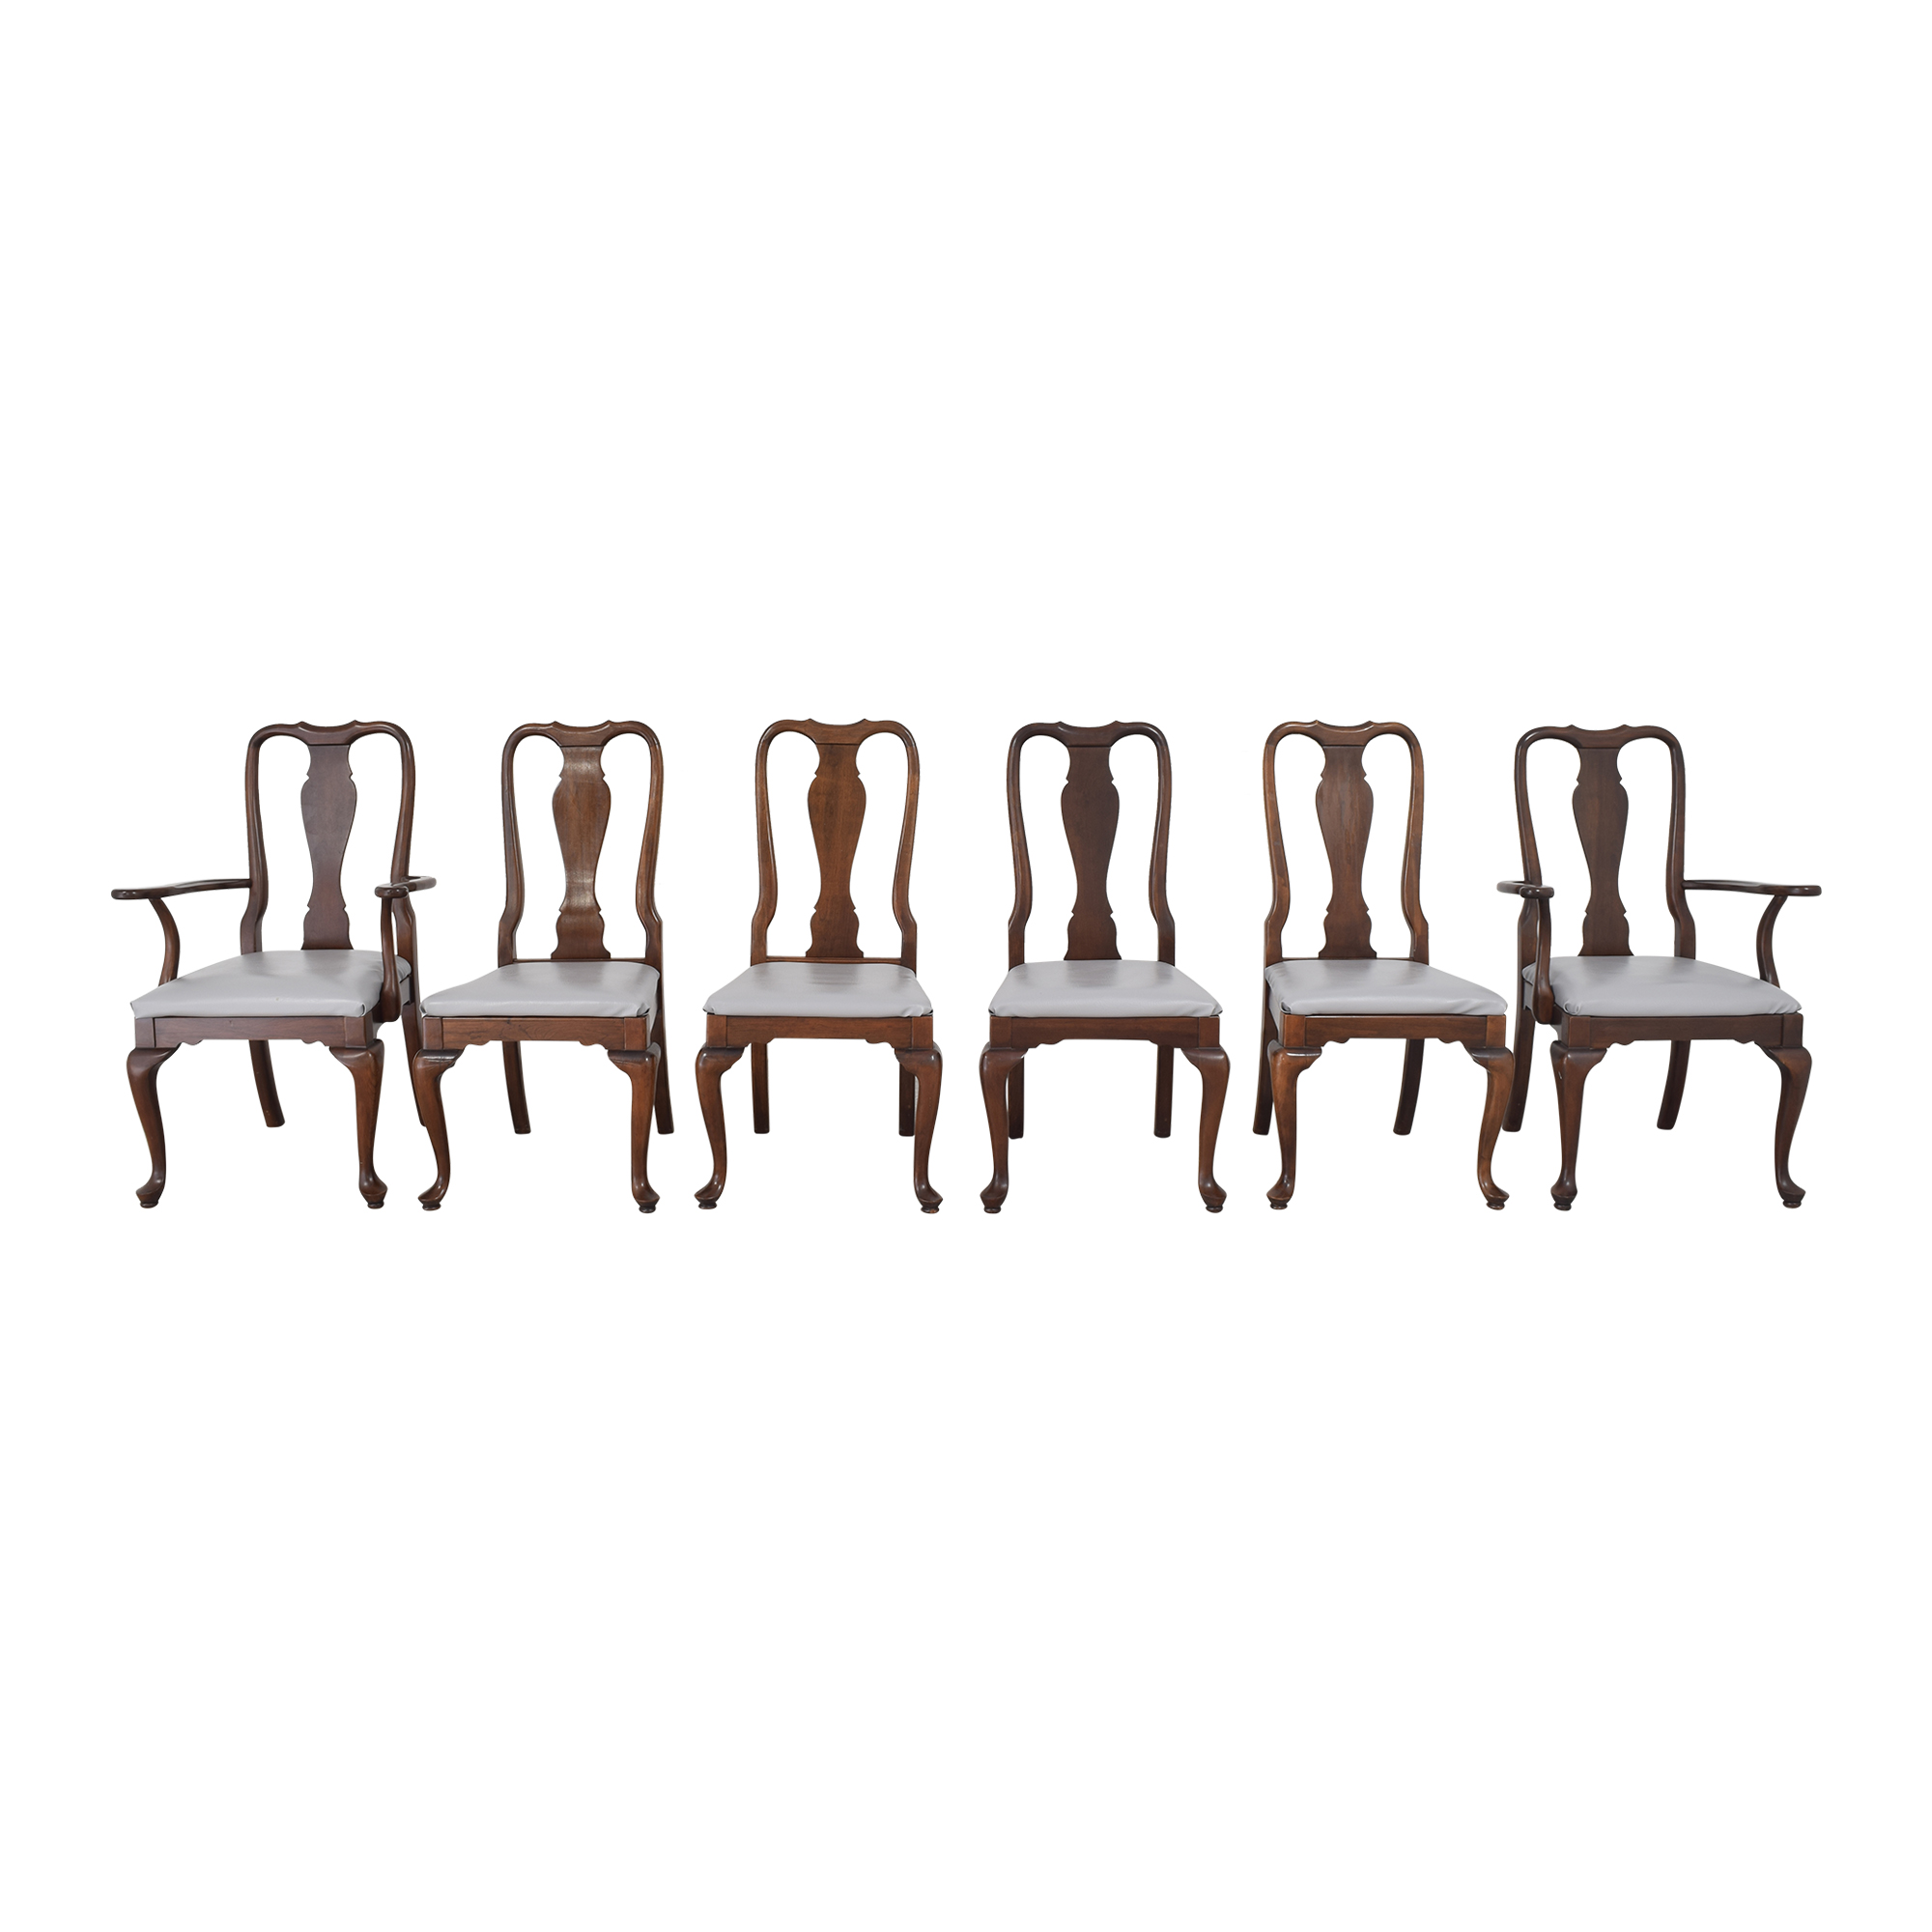 Ethan Allen Ethan Allen Georgian Court Dining Chairs on sale